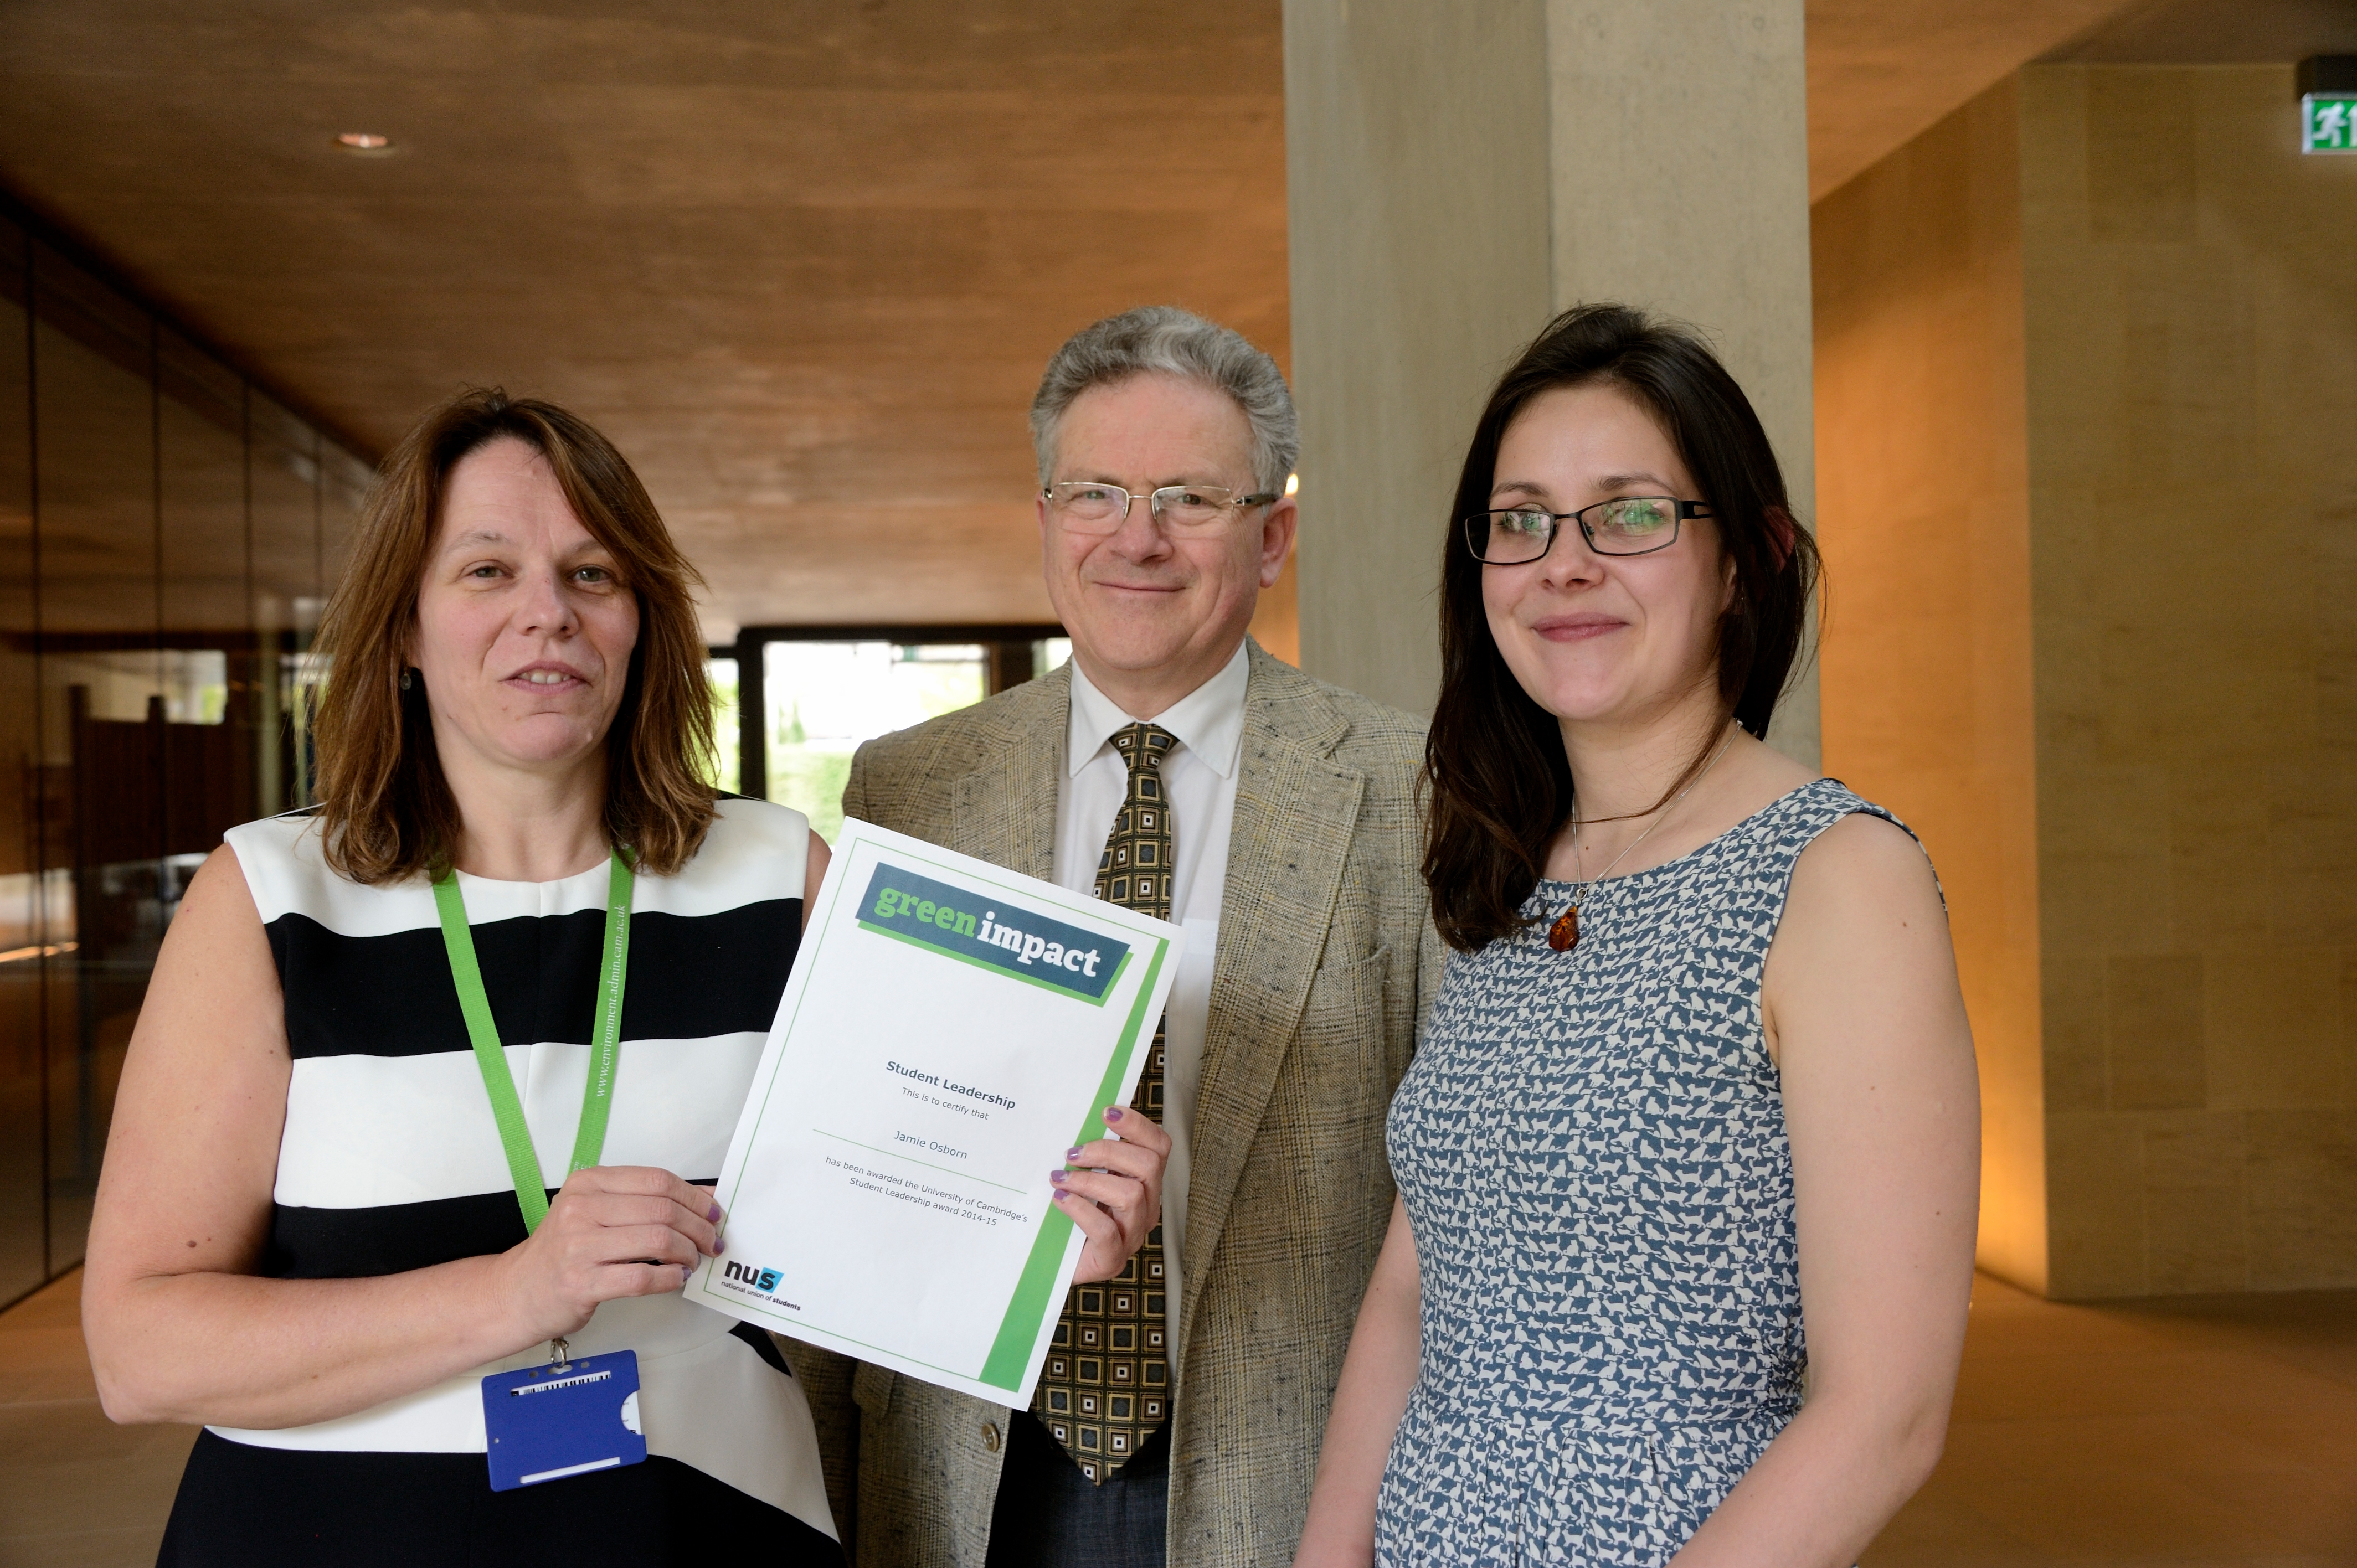 Deborah Hoy from Clare College collecting the award on behalf of Jamie Osborn, winner of the Student Leadership Award, with Professor Jeremy Sanders, Pro-Vice-Chancellor of Cambridge University and Leila McElvenney, Environment and Energy Section